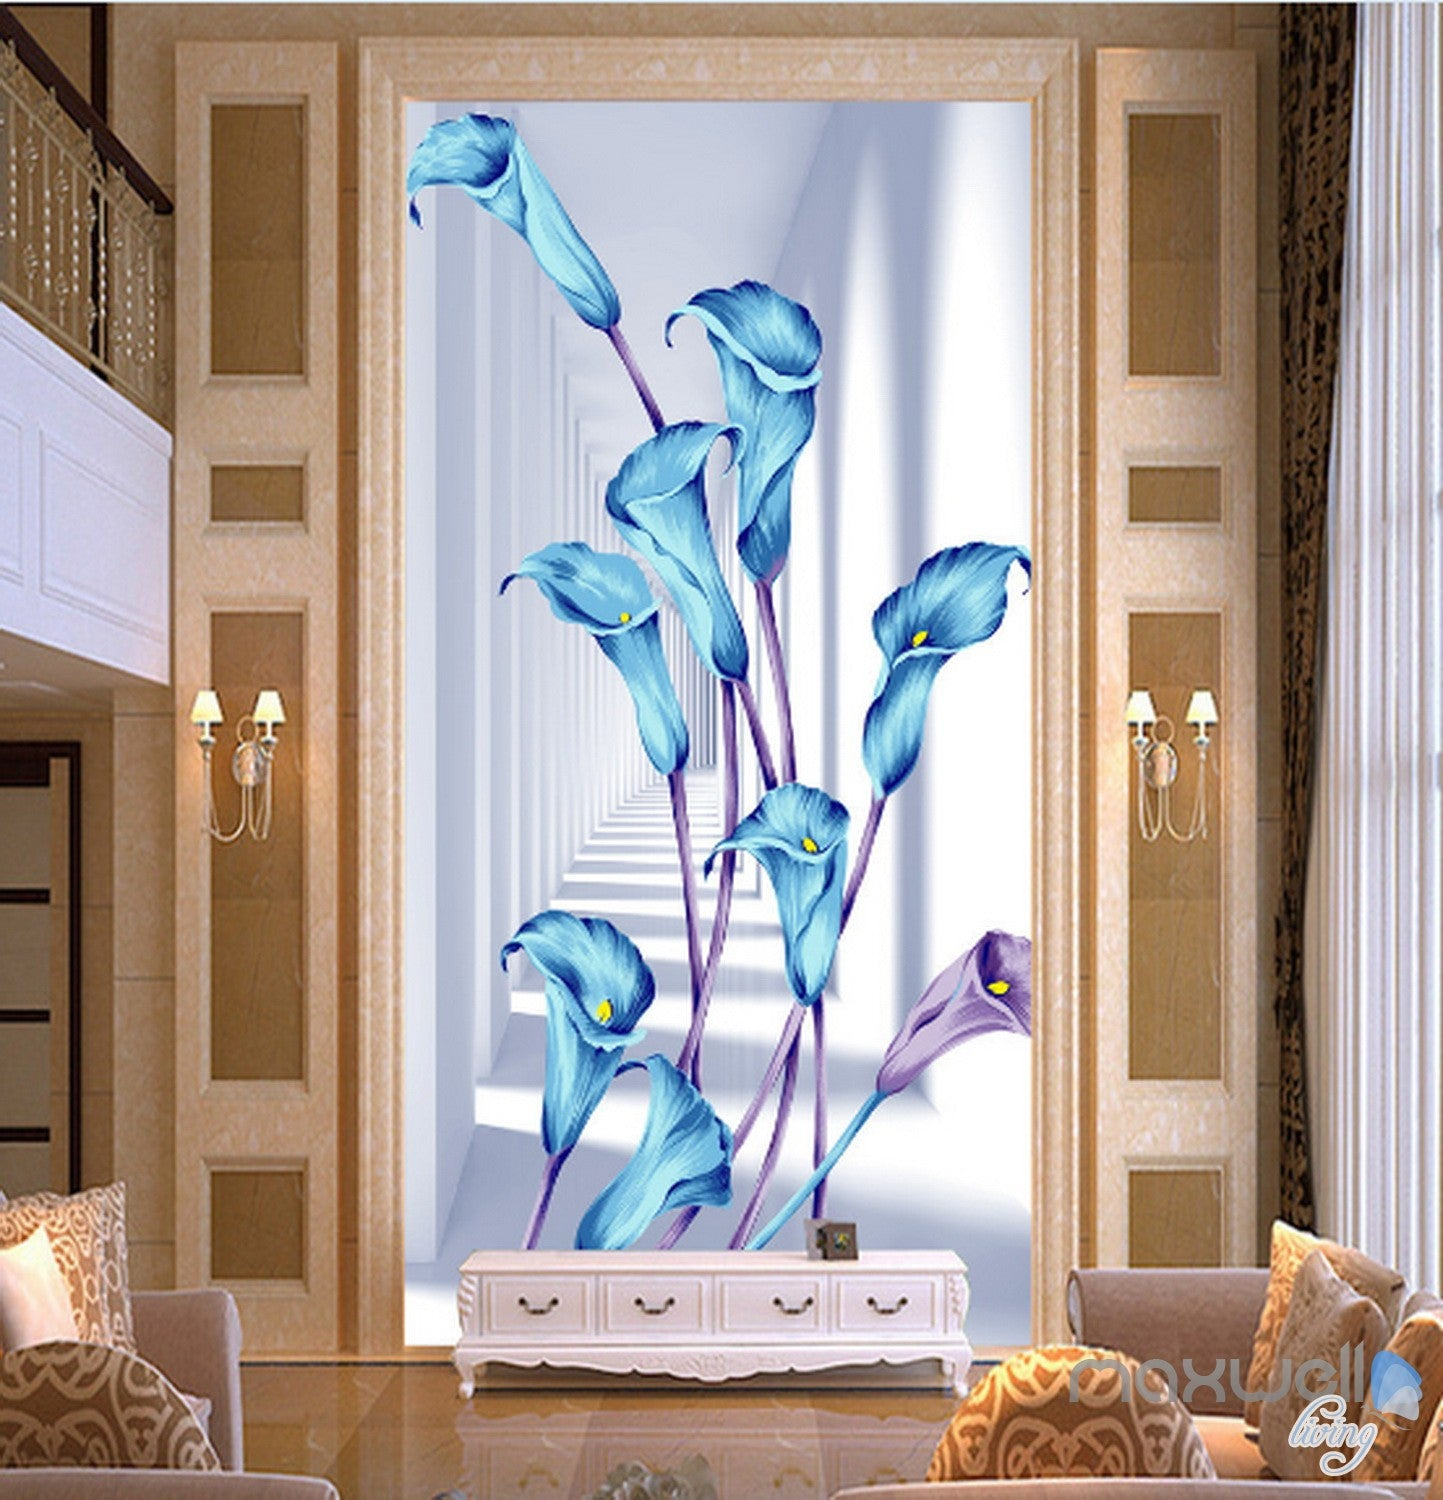 3D Blue Flowers Corridor Entrance Wall Mural Decals Art Print Wallpaper 071 Part 58